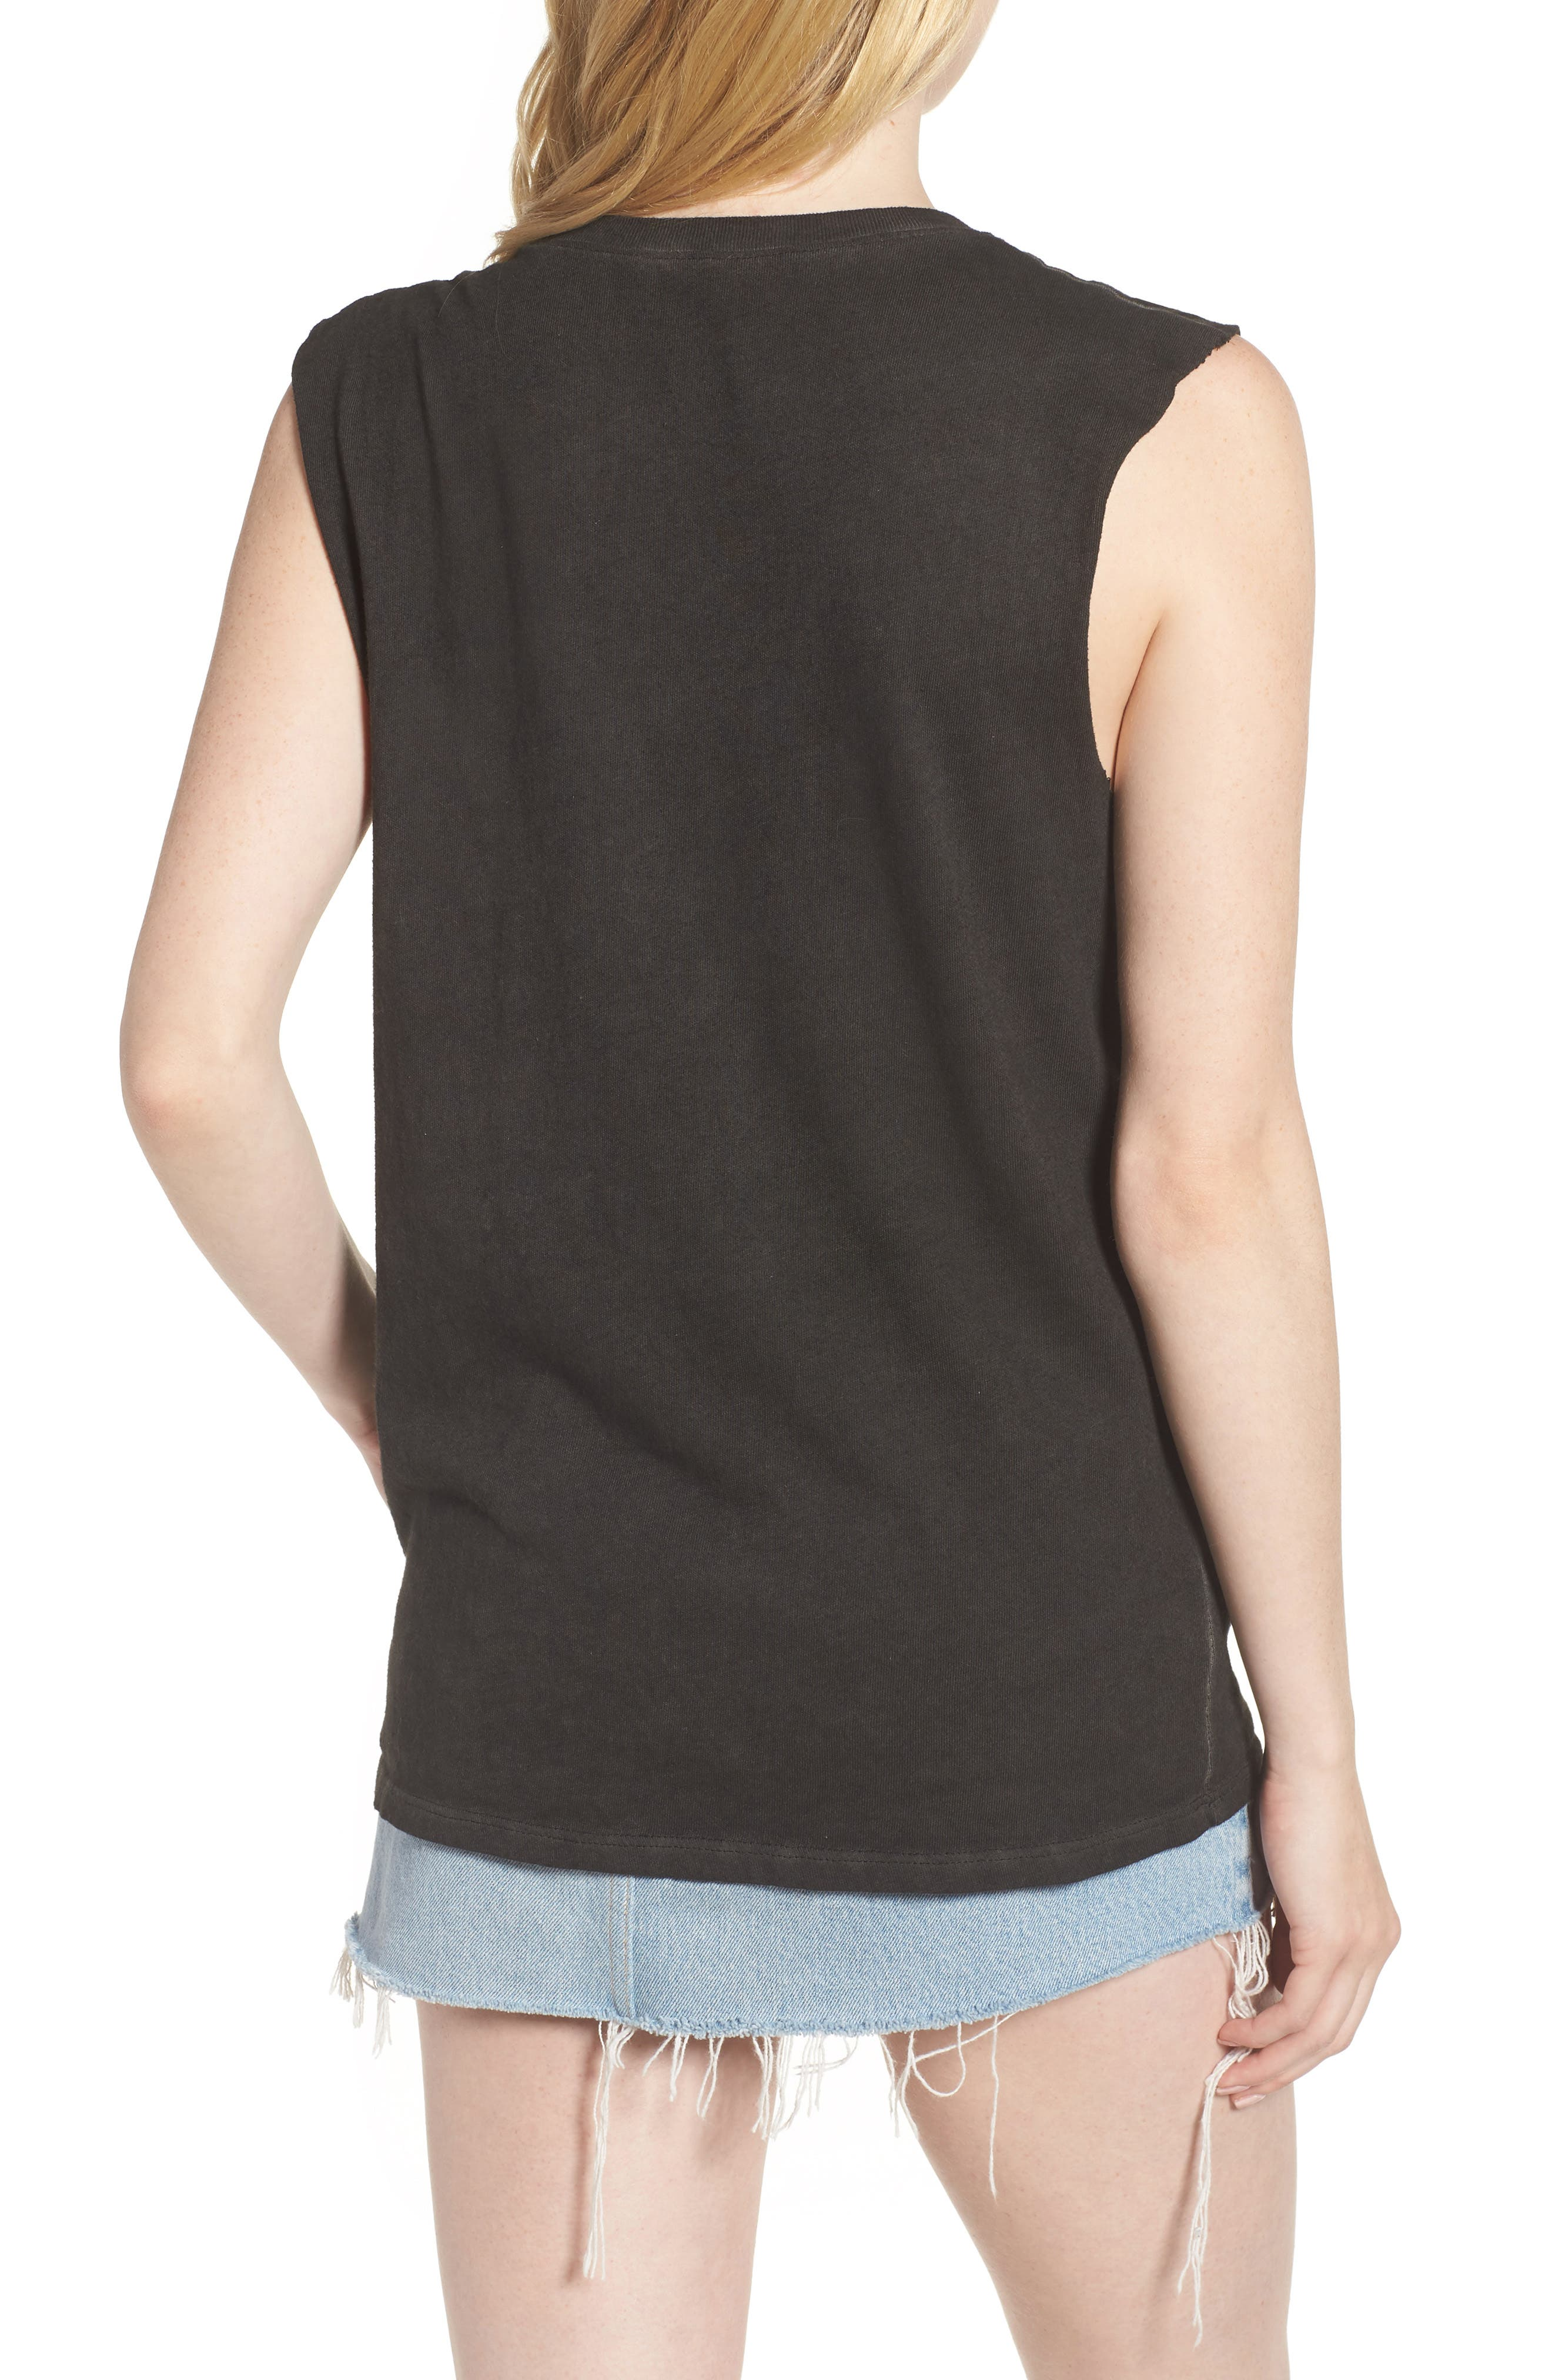 x Grease Muscle Tee,                             Alternate thumbnail 2, color,